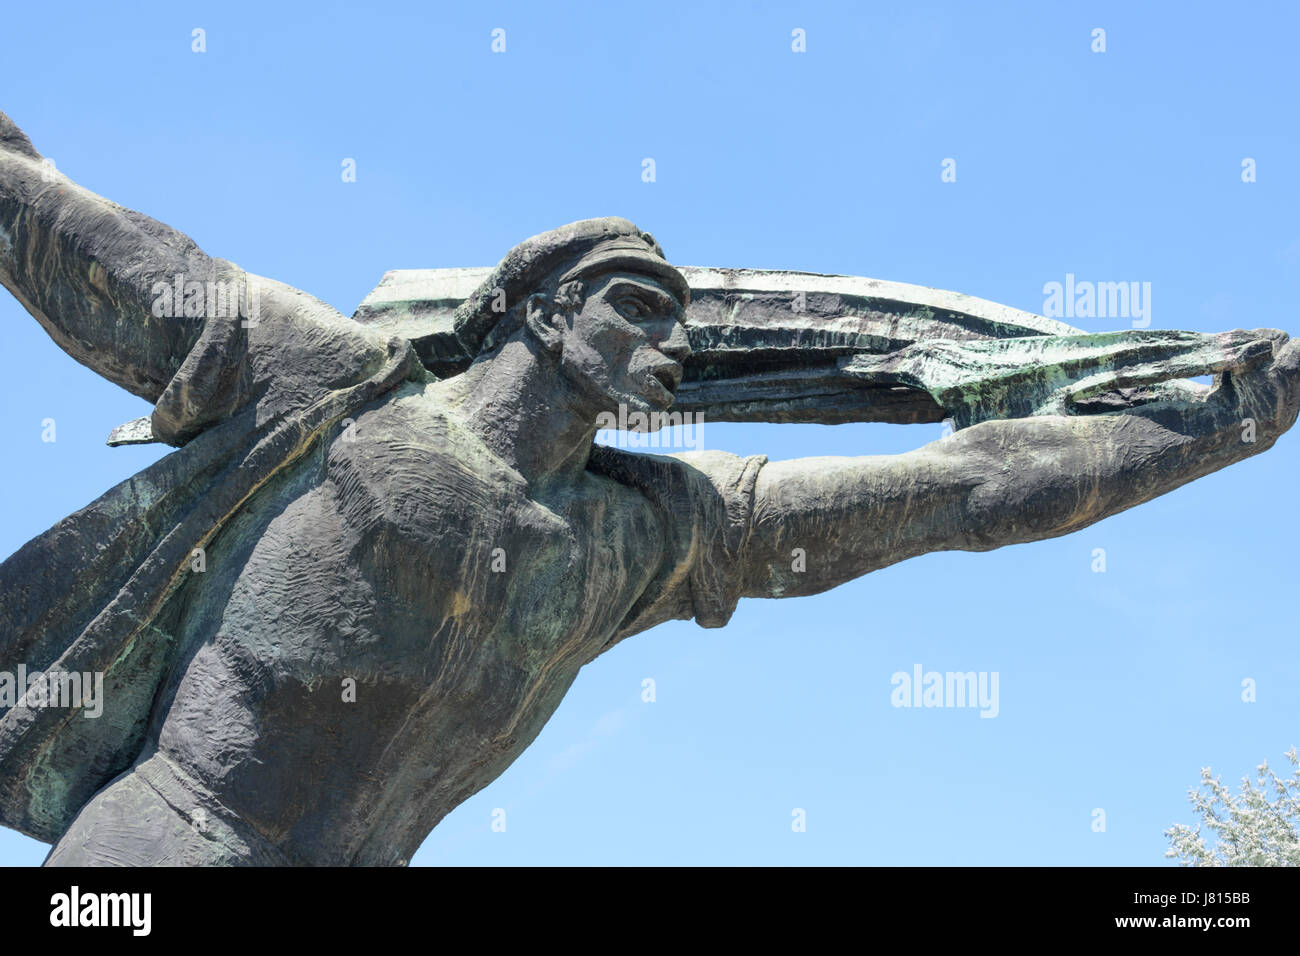 Memento Park, Budapest, Hungary. The Republic of Councils Monument, based on a 1919 revolutionary poster - Stock Image